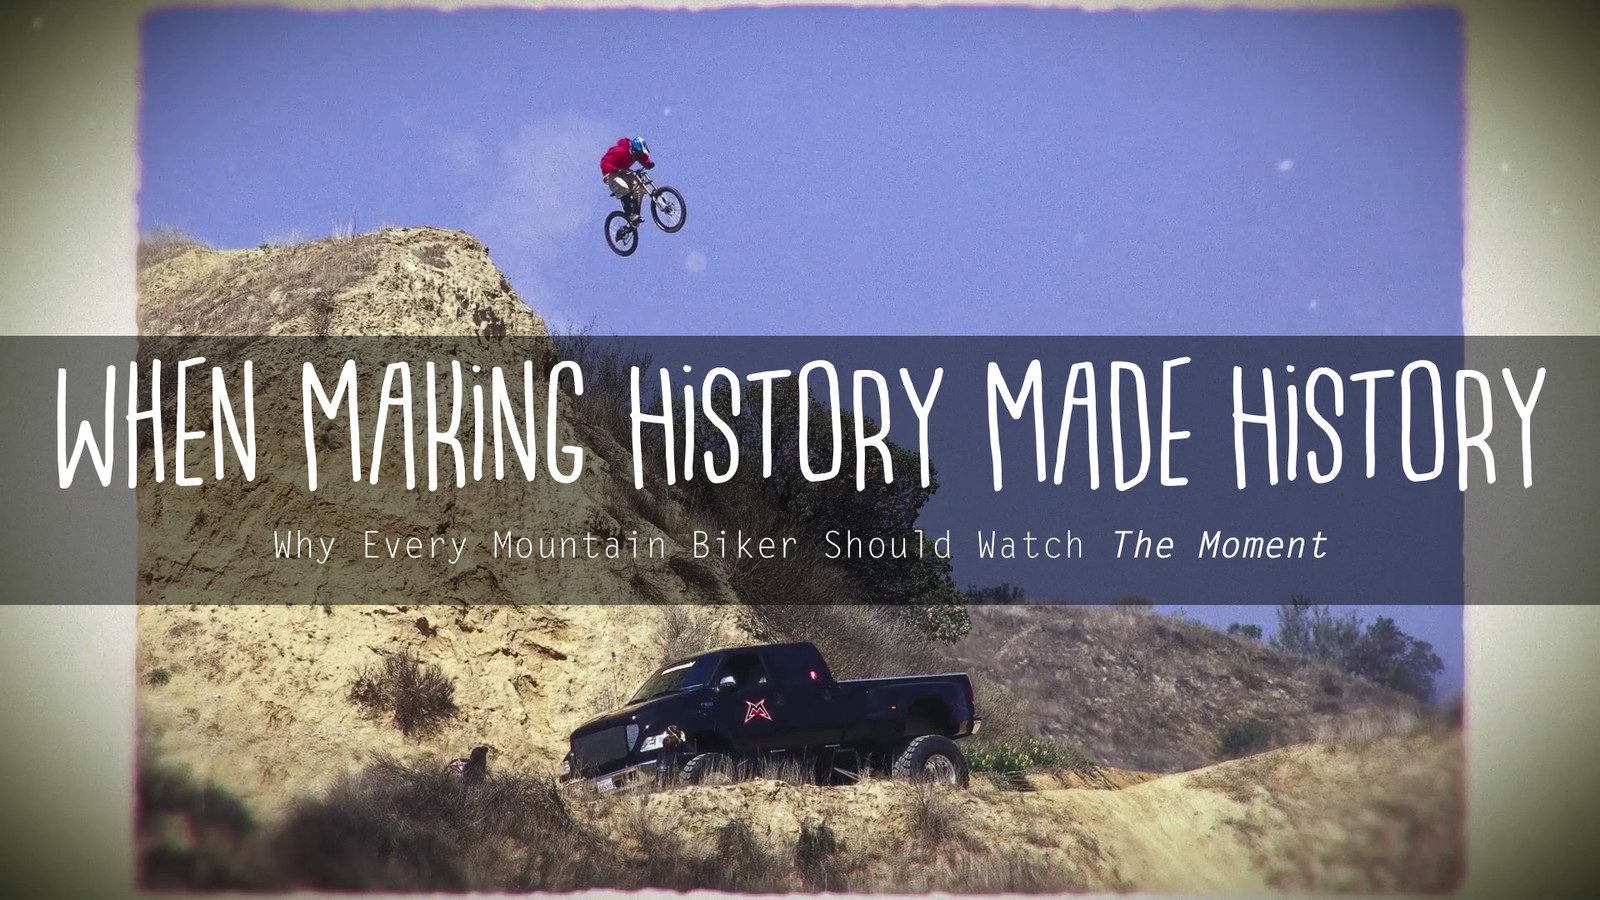 When Making History Made History | The Moment